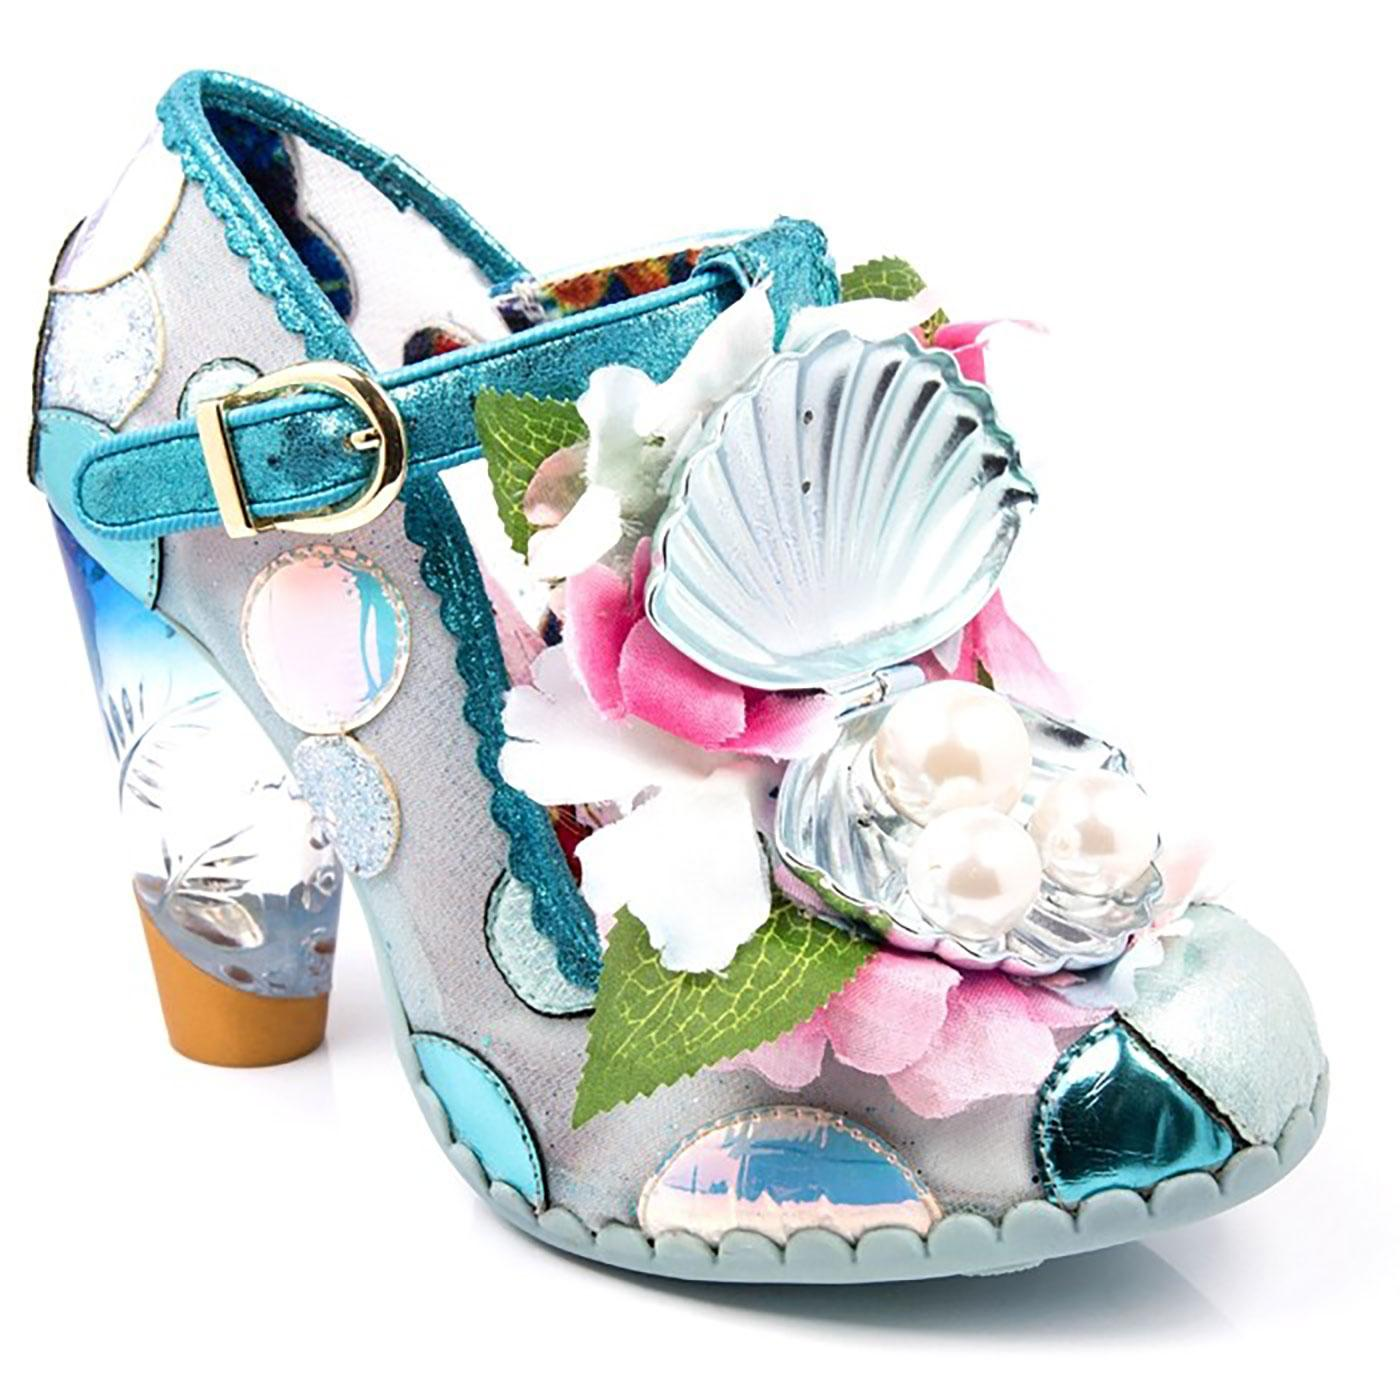 Seafoam Queen IRREGULAR CHOICE Mermaid Heels BLUE